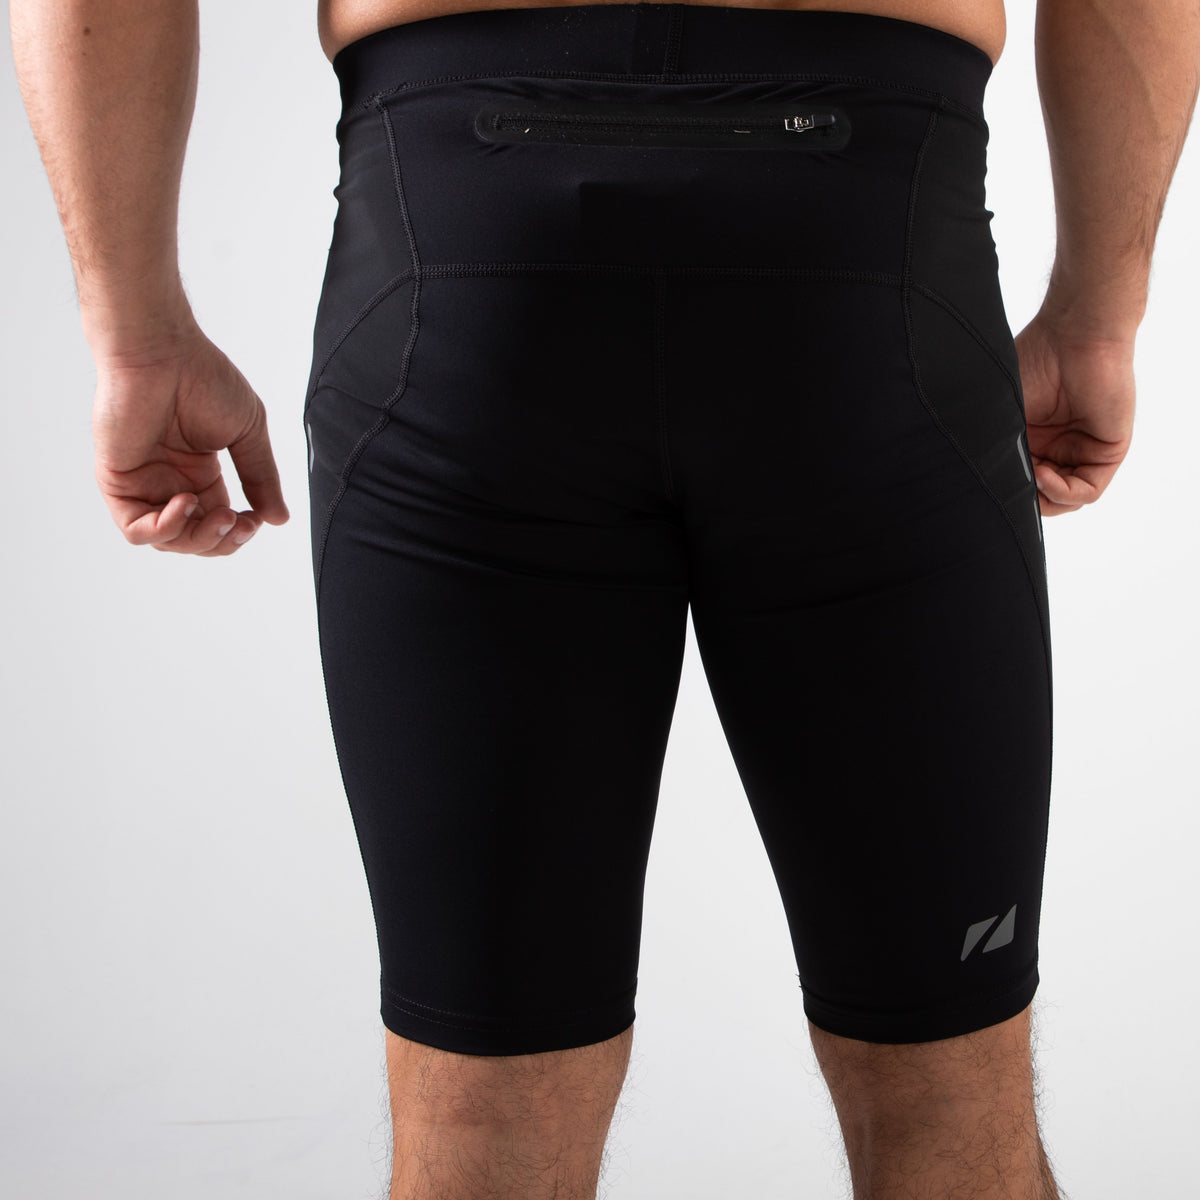 Men's RX3 Medical Grade Compression Shorts back leg